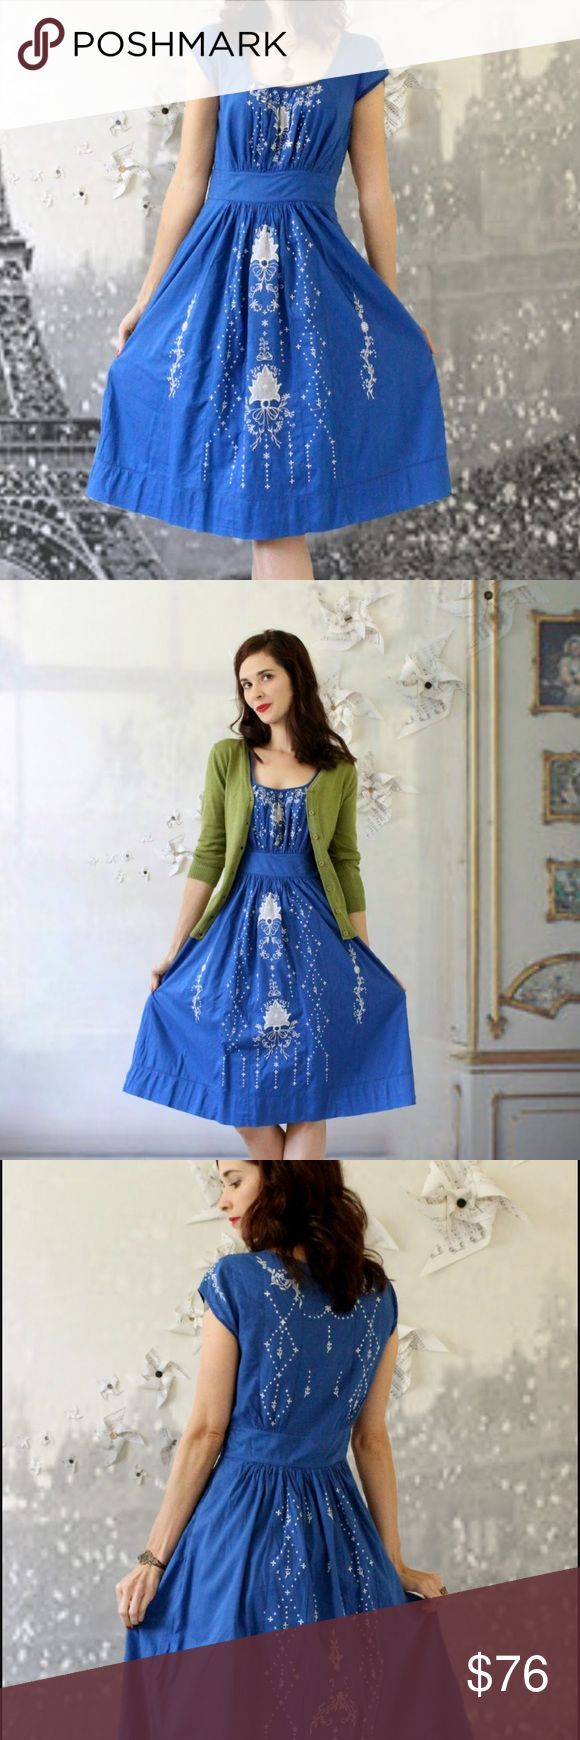 """ANTHROPOLOGIELIL HARISSA EMBROIDERED DRESS Super cute. Dress Anthro brand Lil.  This brilliant blue with the white floral embroidery. Everything about this dress is perfect, and I especially love the attention to detail on the back as well as the front. Side hidden zipper, capped Sleeves. Fully lined with the same beautiful blue that's on the outside. 100% cotton machine wash. Banded waist for added shape definition. Measurements taken flat bust 17"""" waist 13"""" length 40"""" Anthropologie Dresses…"""